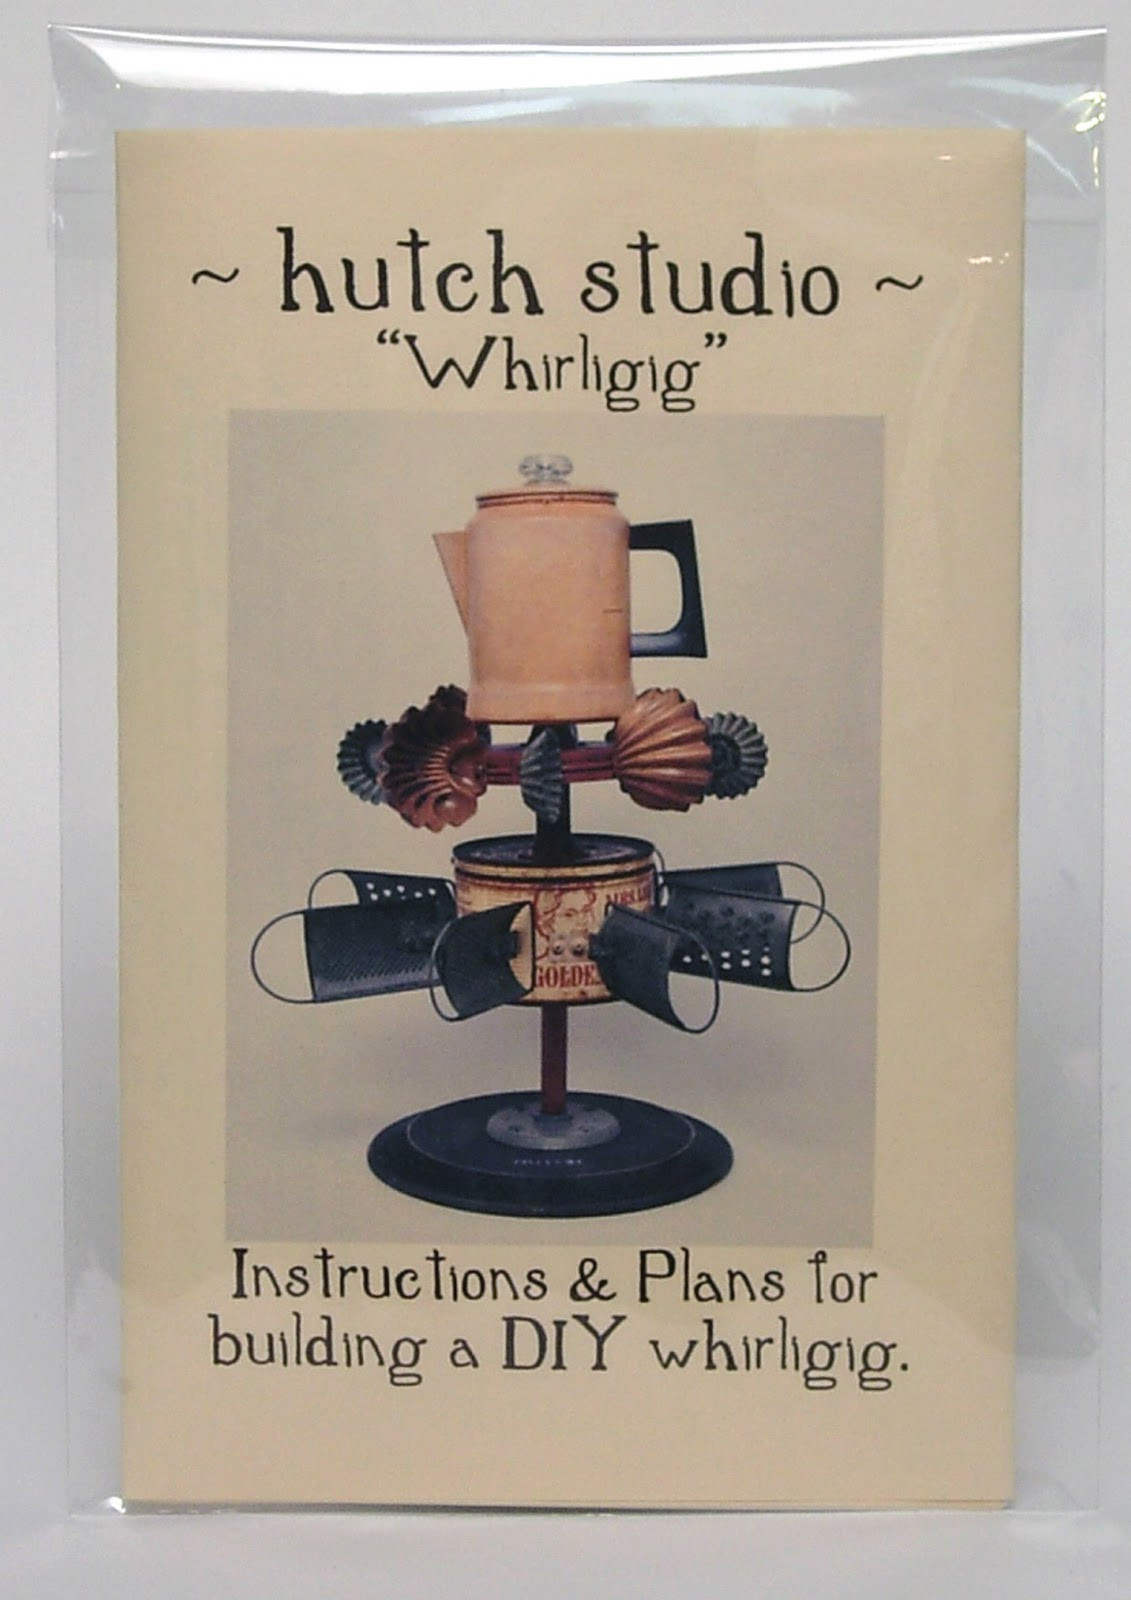 Best ideas about DIY Whirligig Plans . Save or Pin hutch studio DIY Whirligig Plans Now.